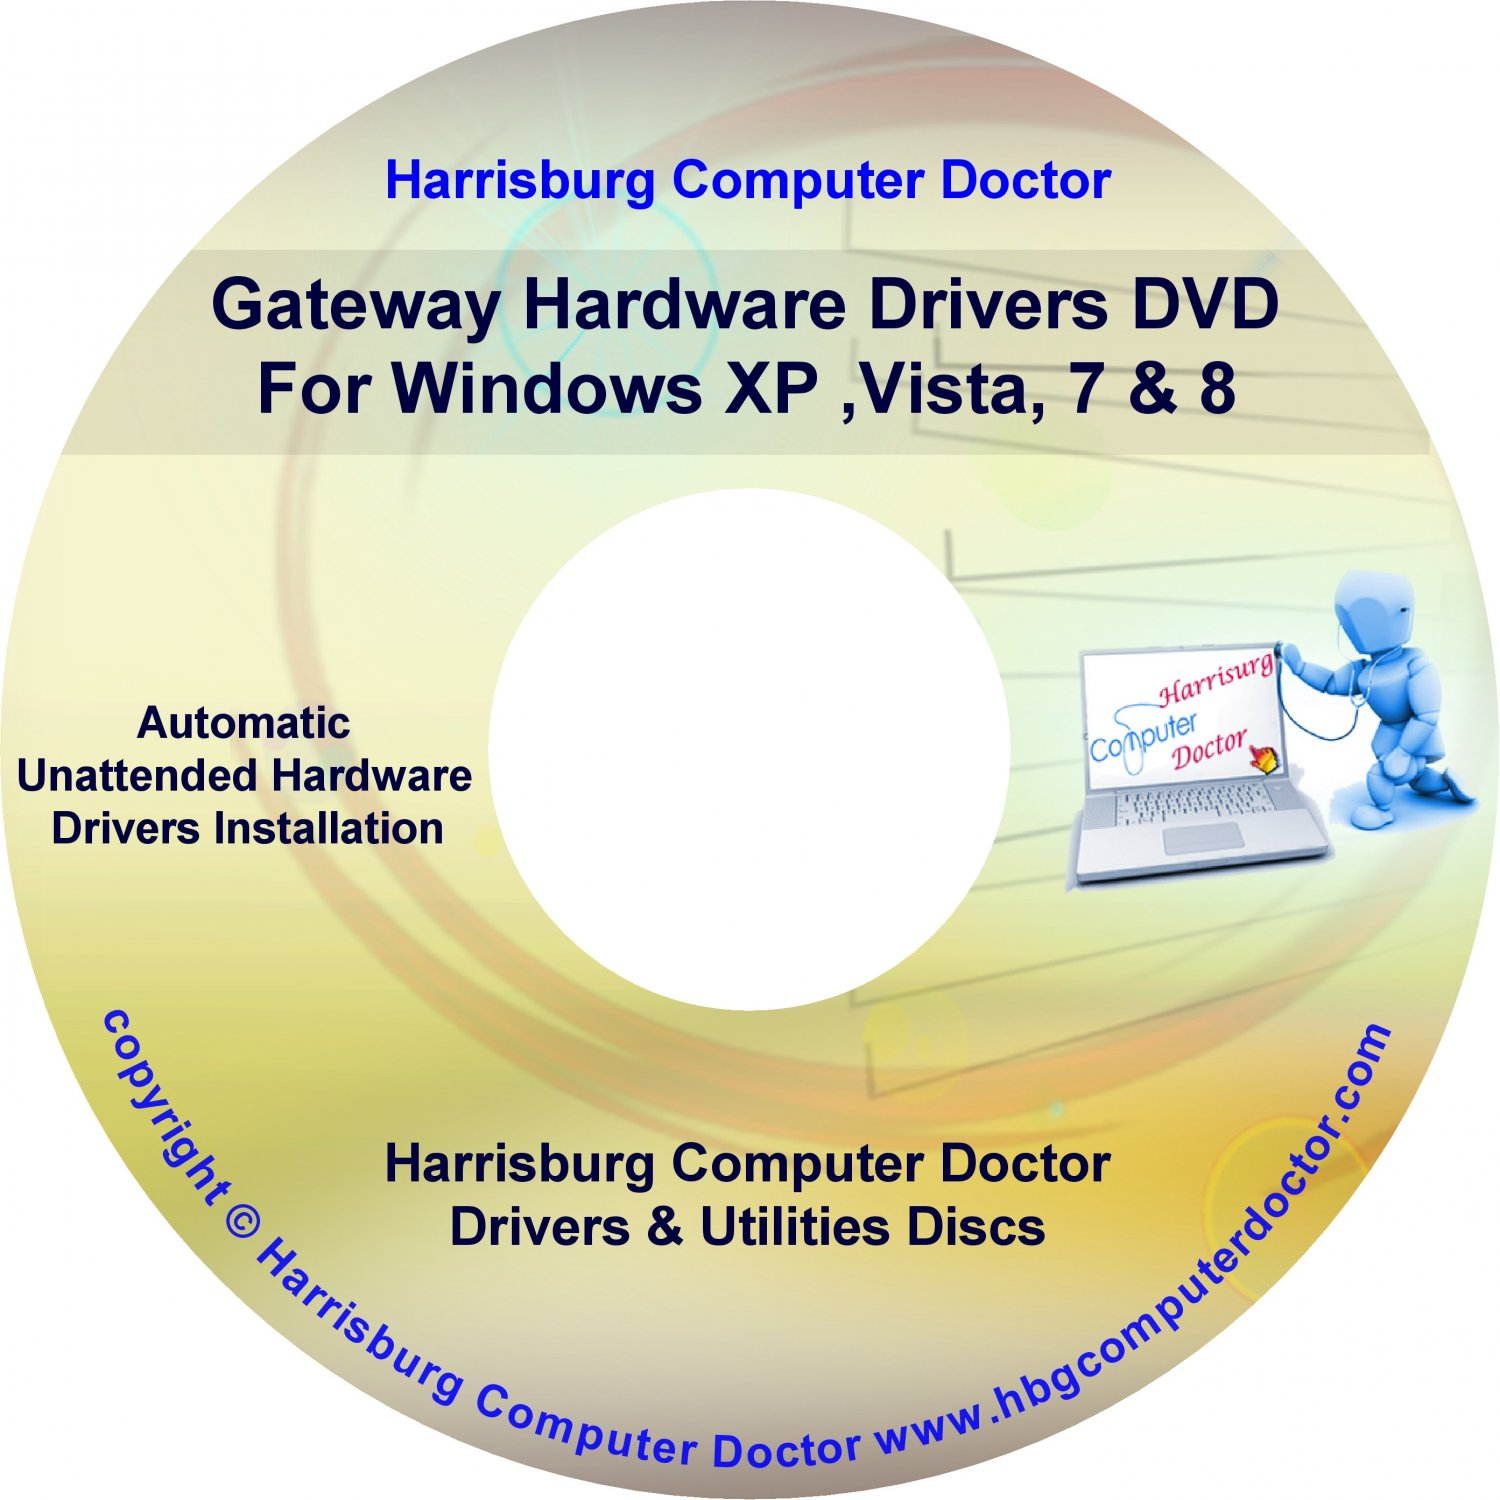 Gateway MX6628j Drivers DVD For Windows, XP, Vista, 7 & 8